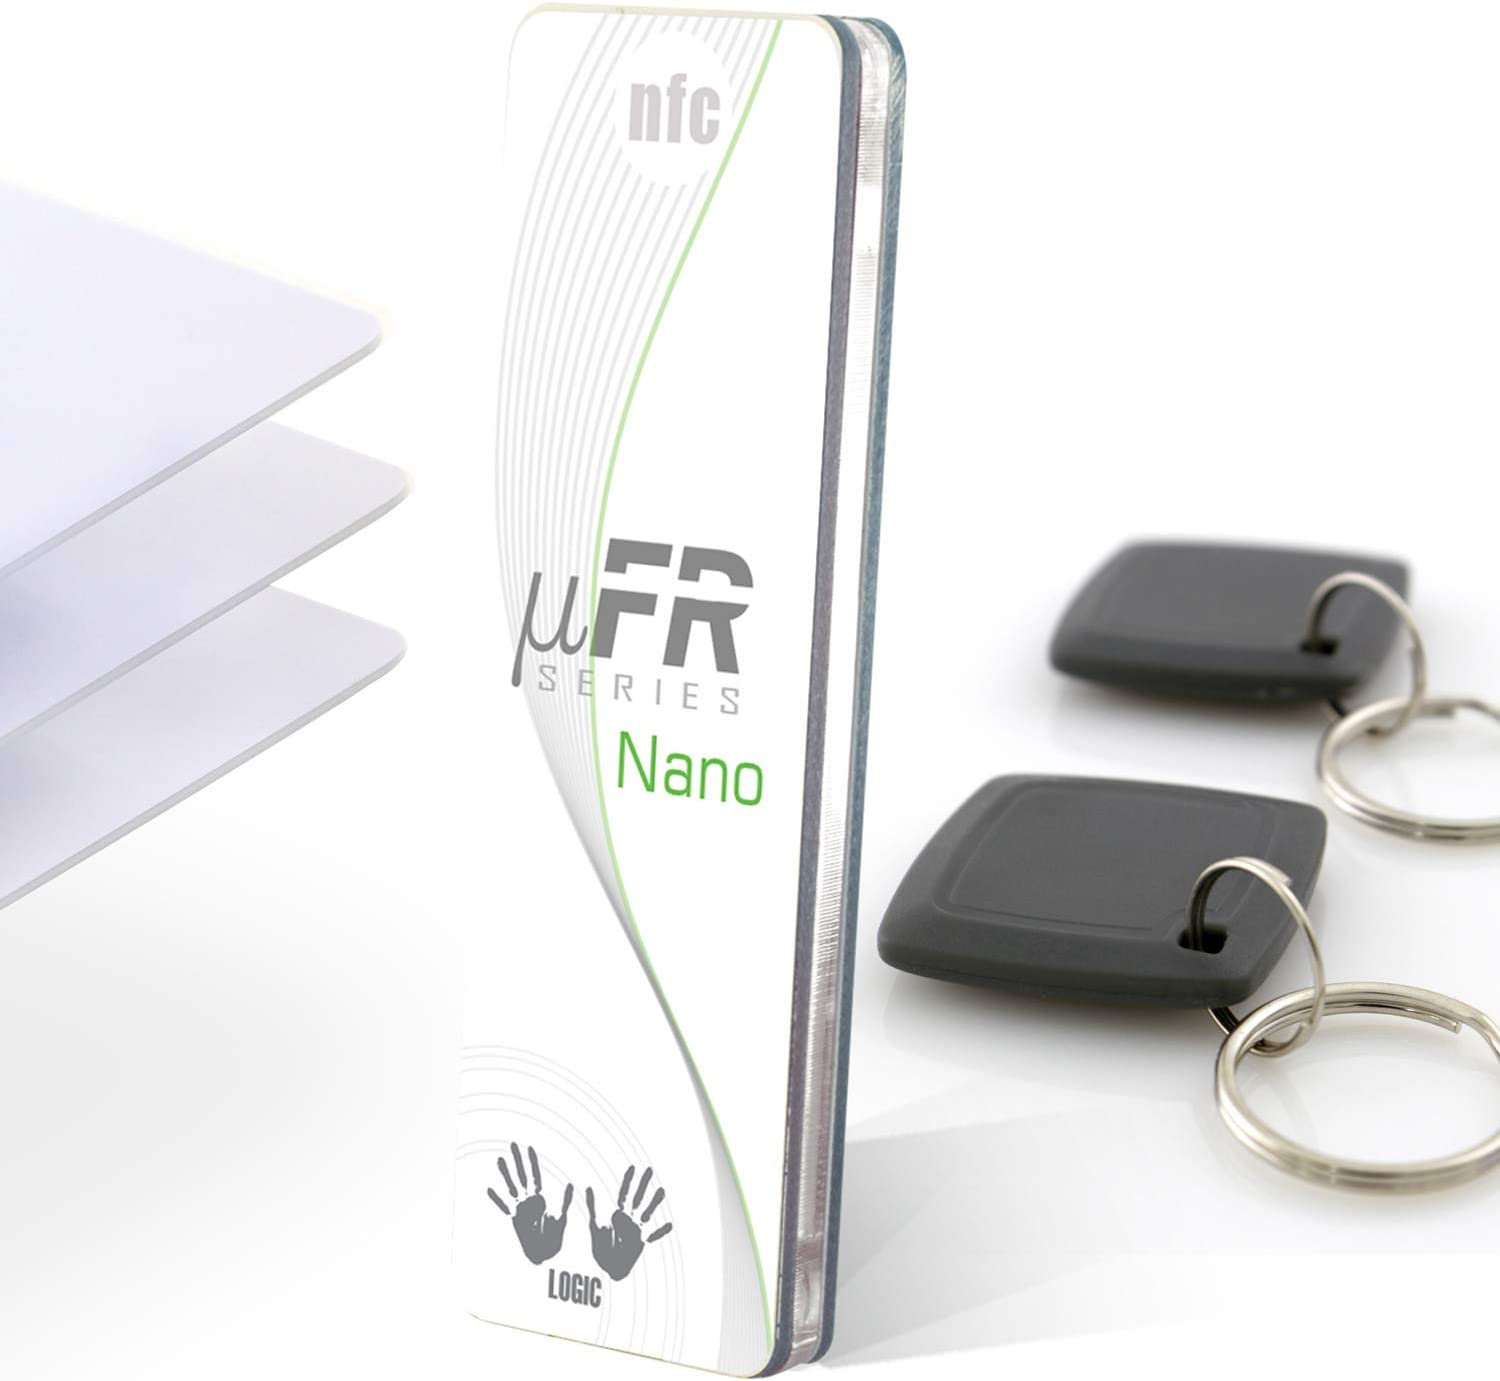 UART D-Logic uFR Nano RFID NFC Reader Writer 13.56MHz Programmer with Serial Interface Software SDK Examples 3 Cards and 2 Key fobs NFC Reader